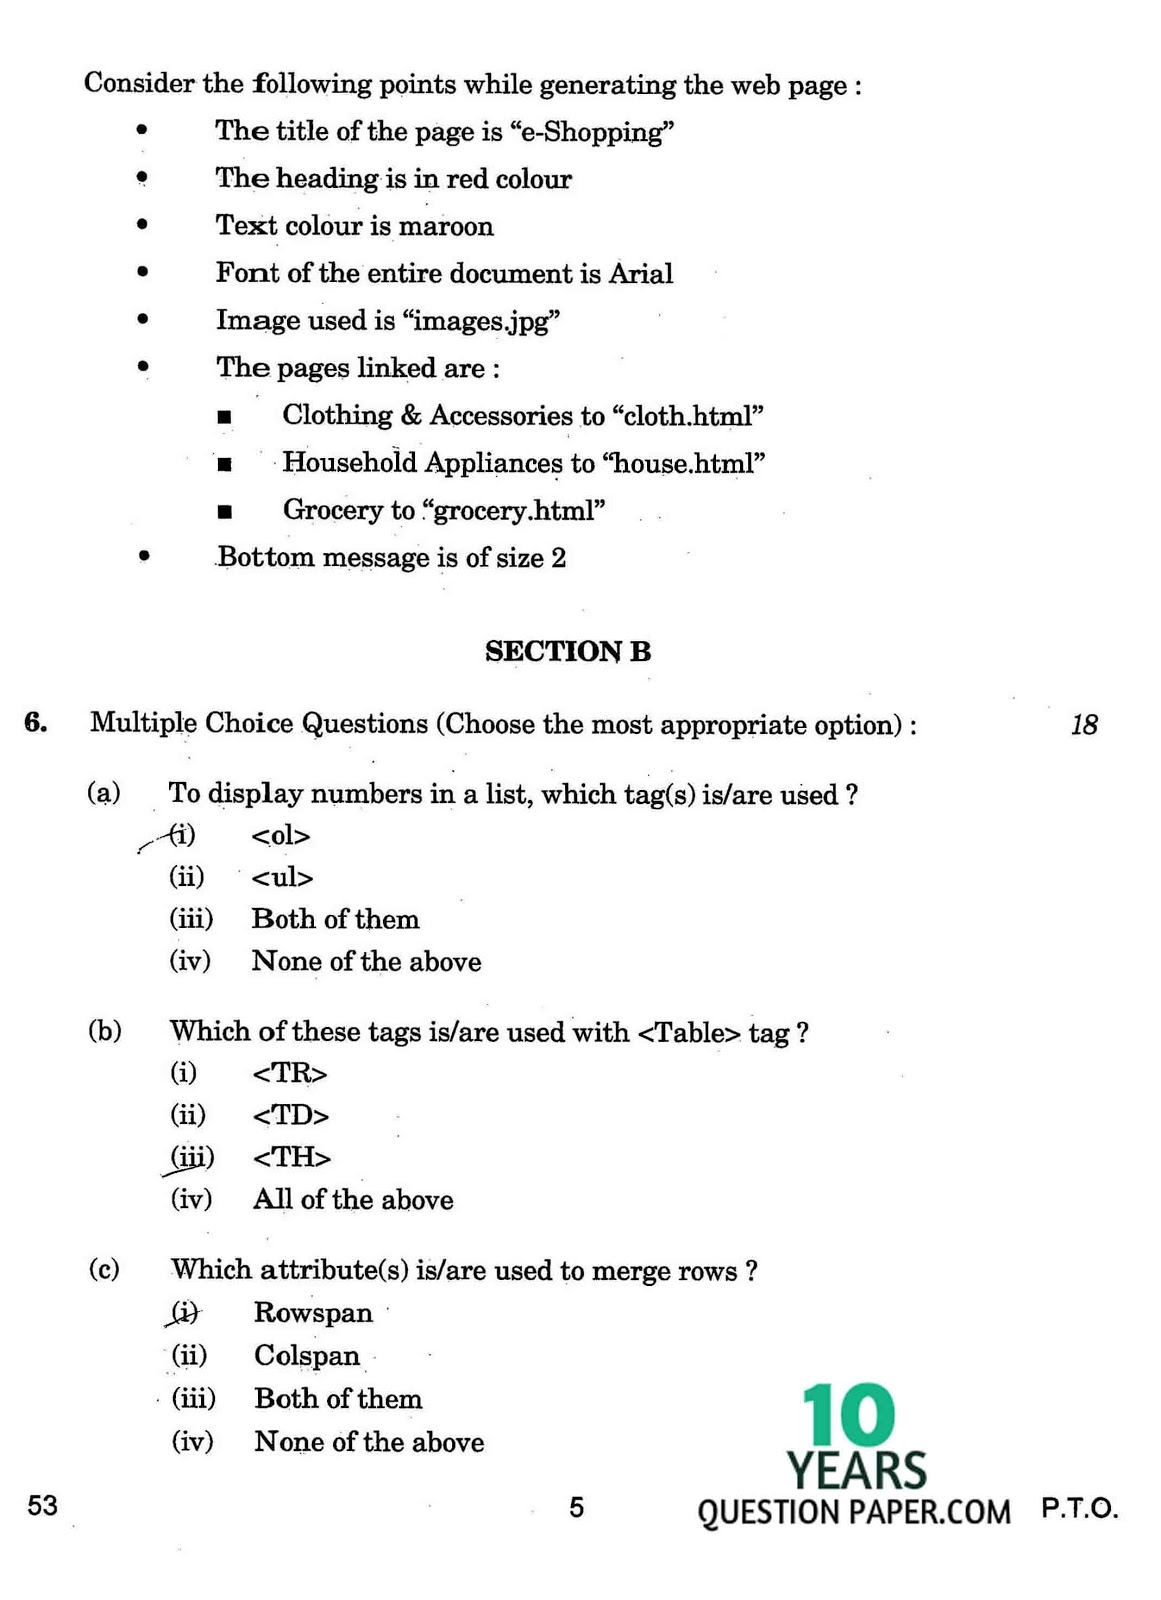 cbse class 10th 2017 Information Technology question paper 4